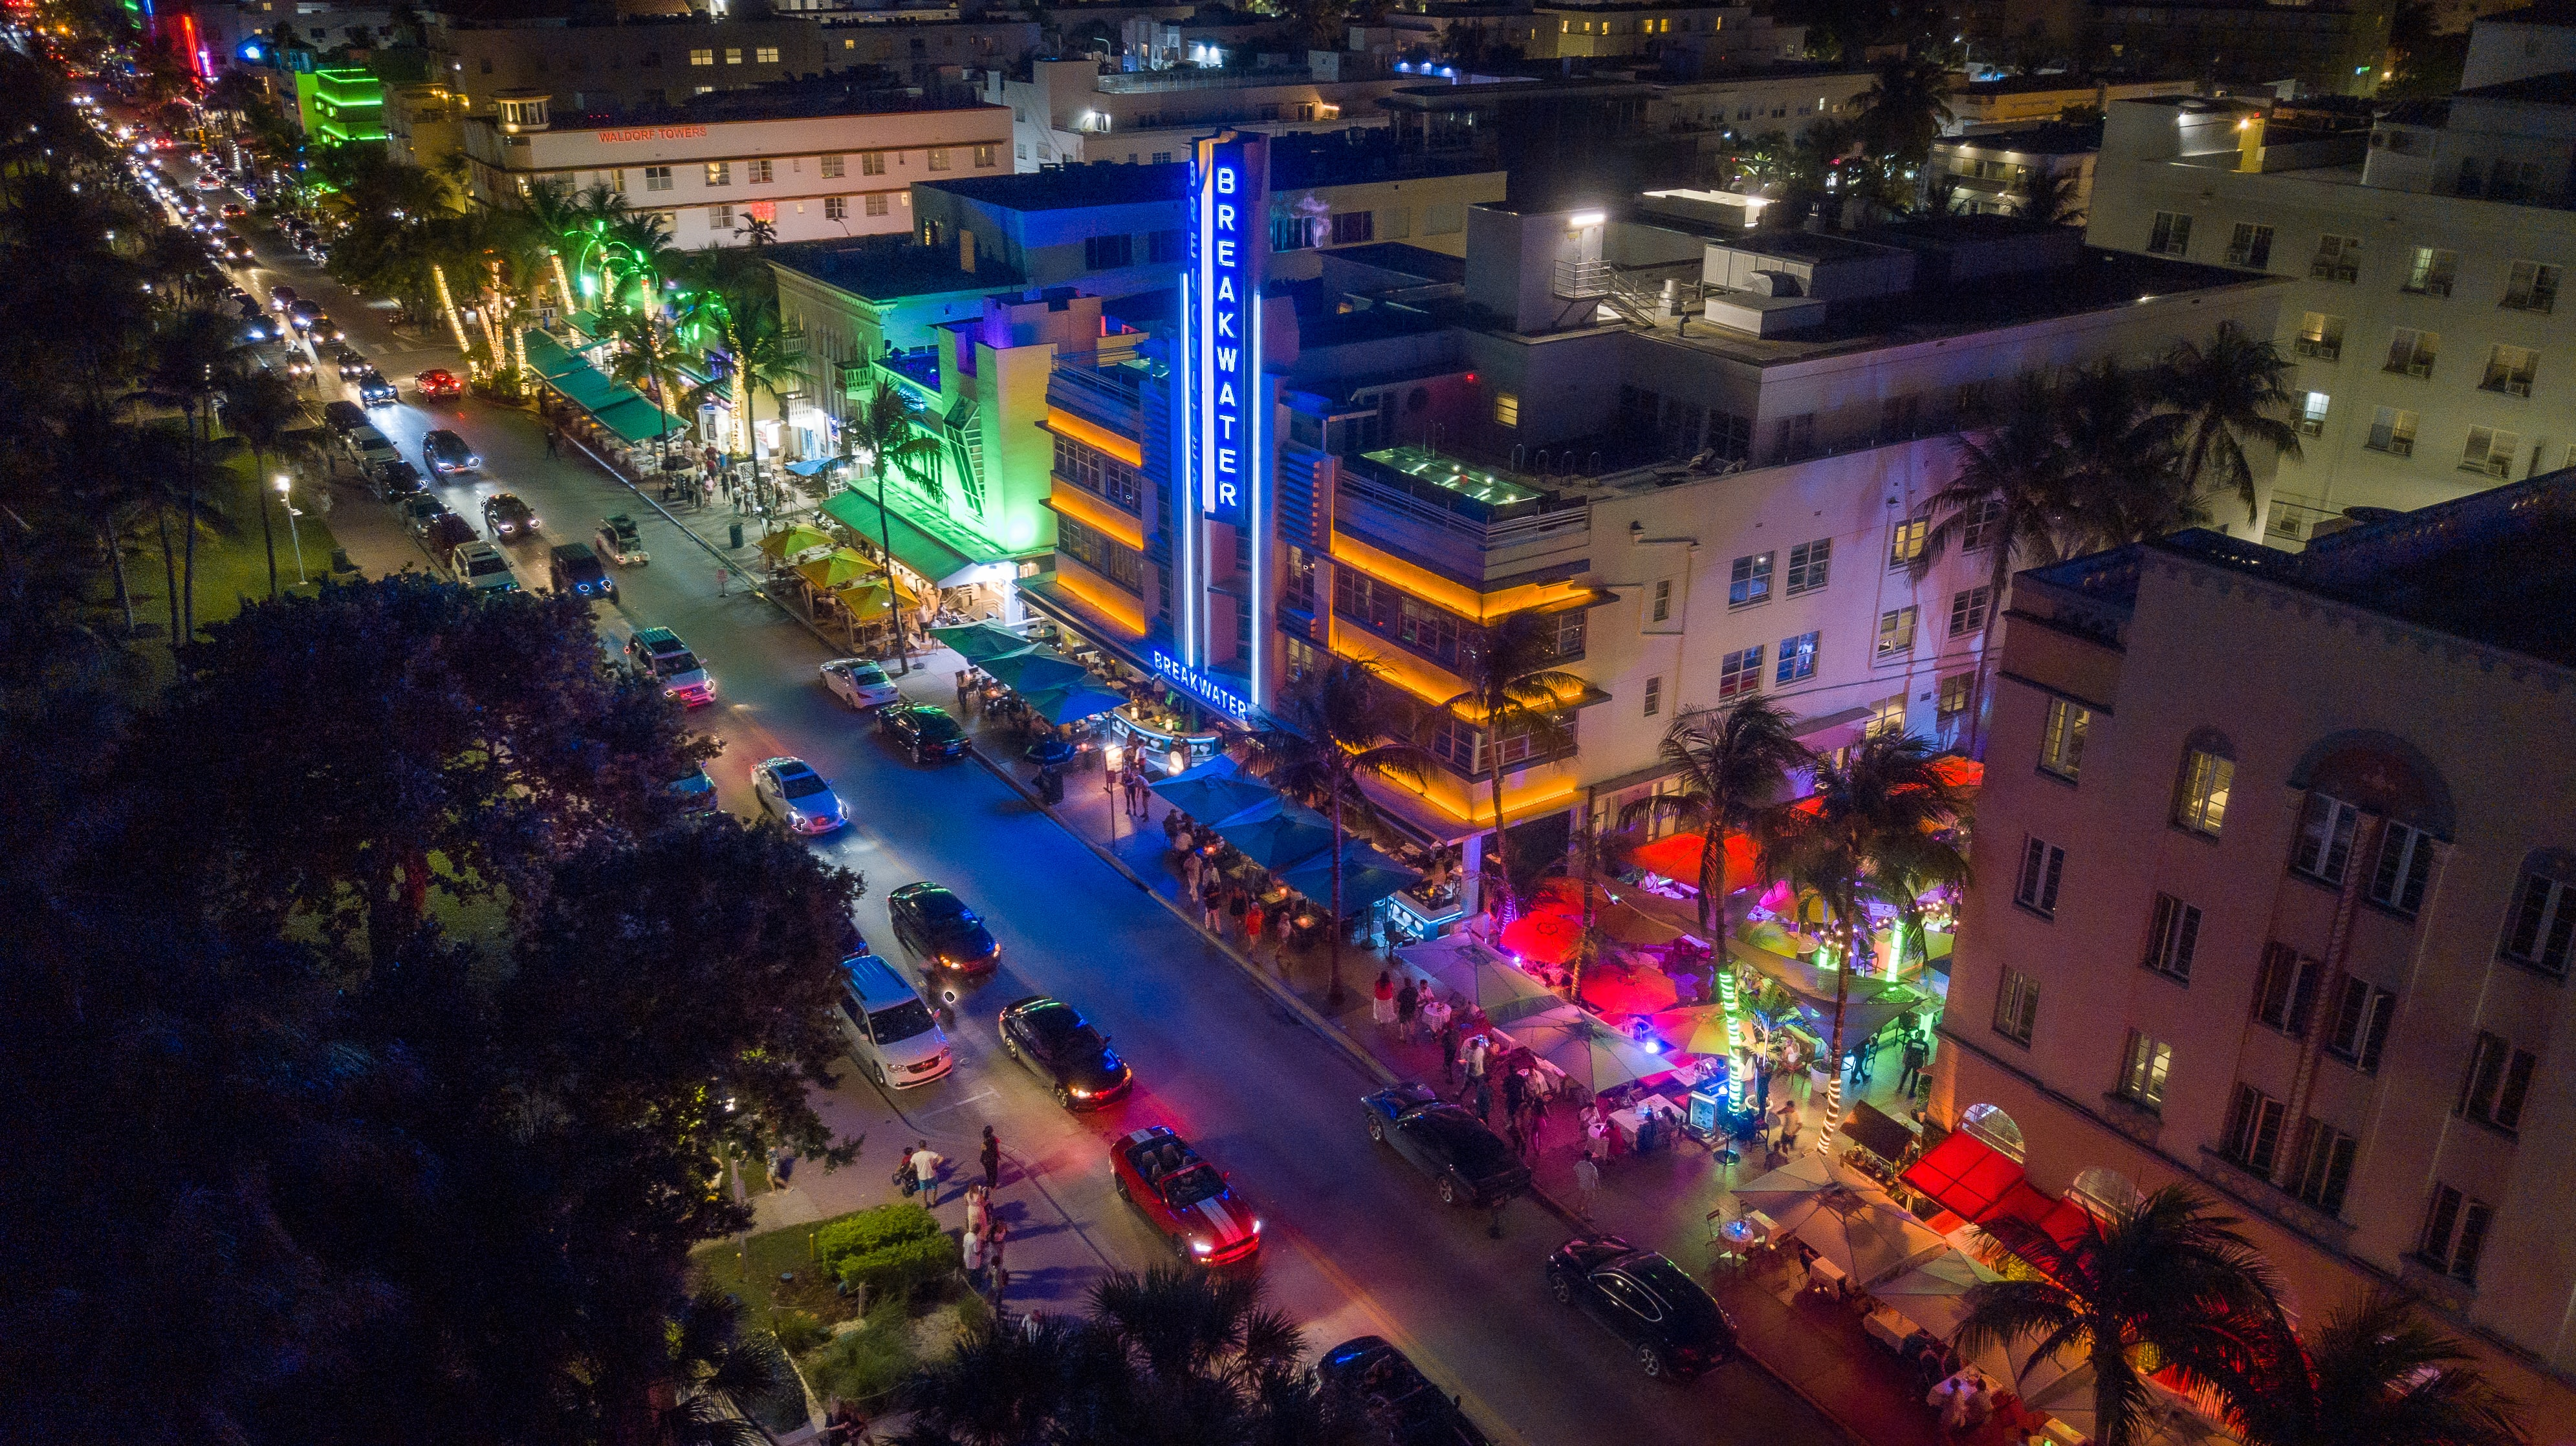 Aerial photo of Ocean Drive at night with bright colors and cars on the street